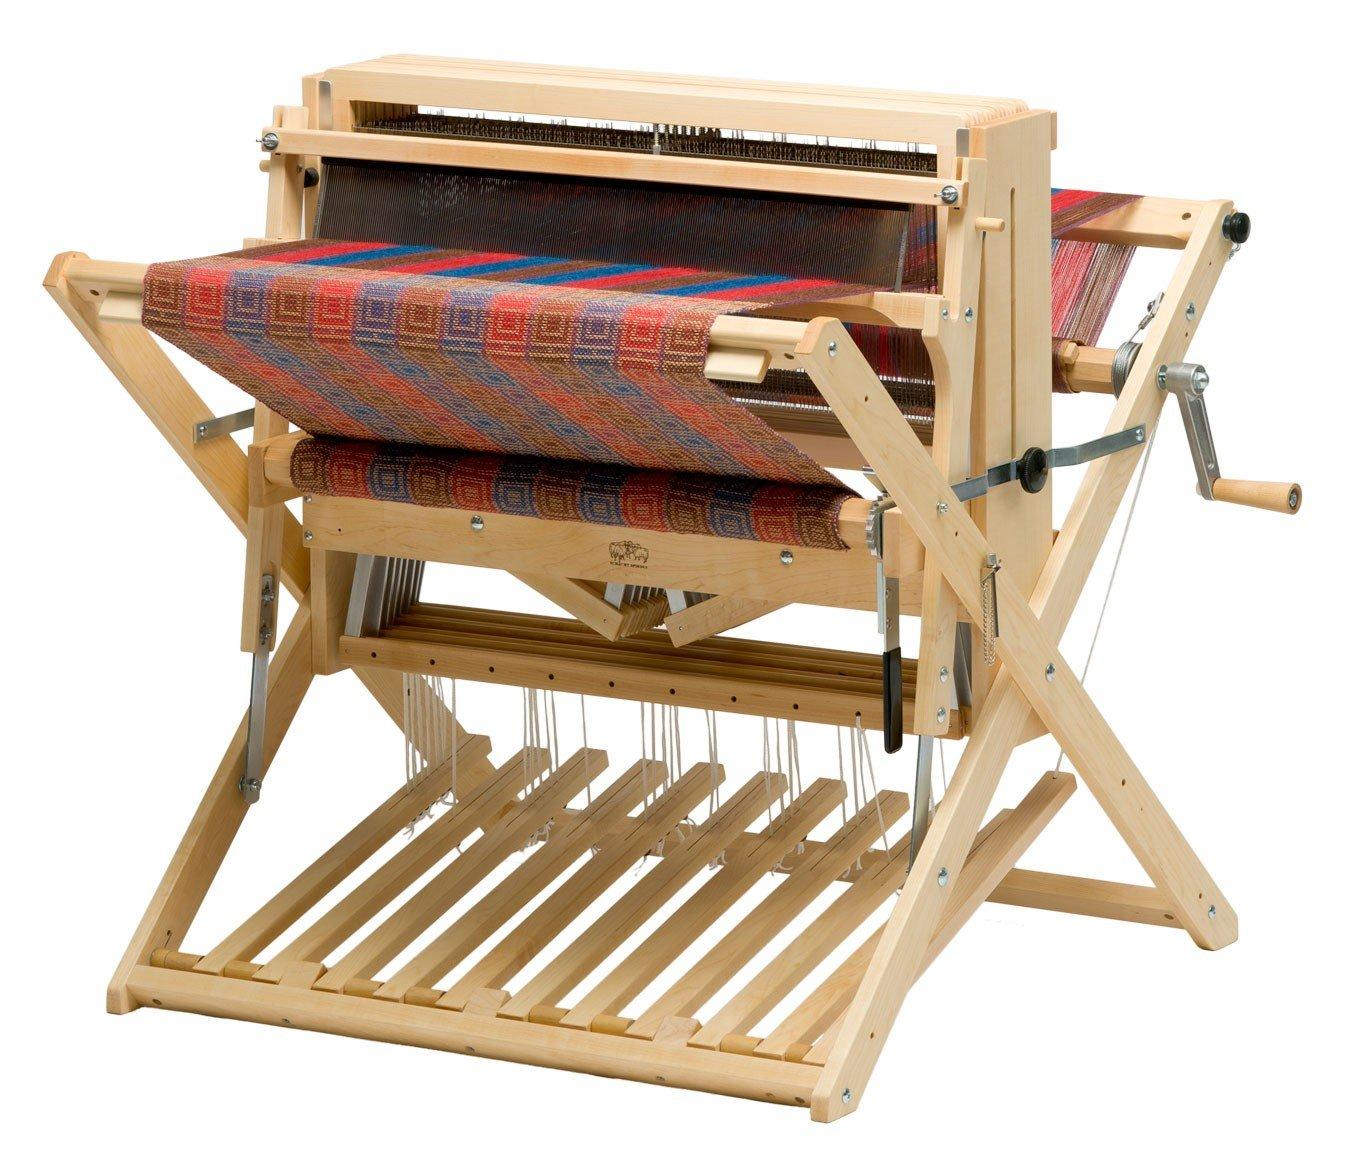 Schacht Baby Wolf Floor Loom - 8 Shaft 10 Treadle Schacht Spindle Company SCH-2604